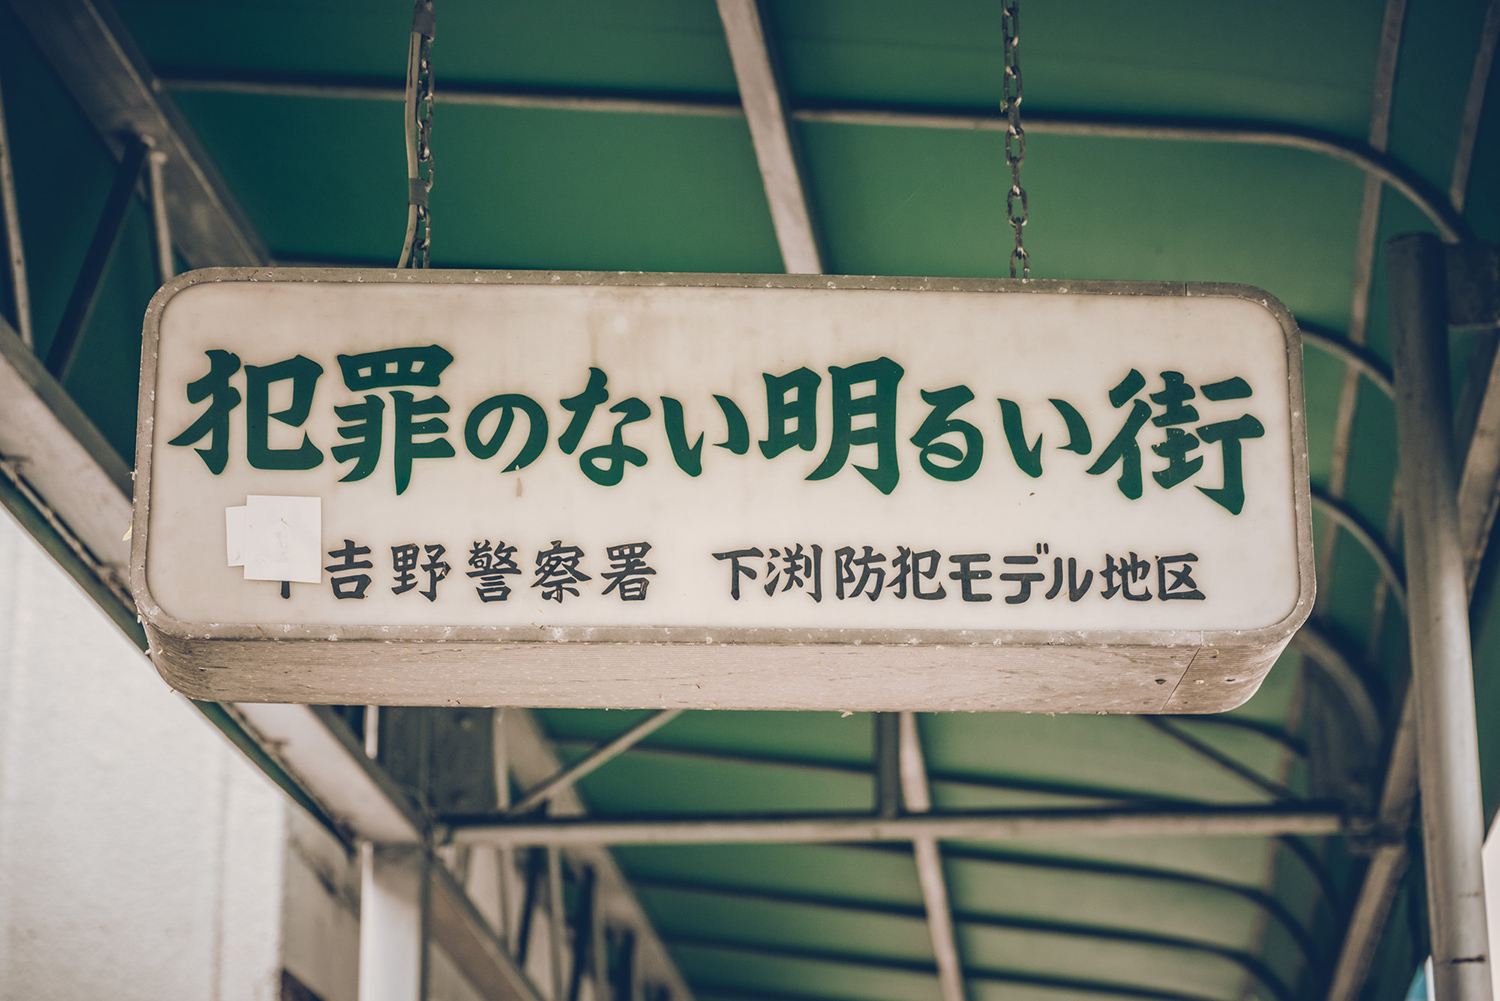 The Shimobuchi Market in Japan